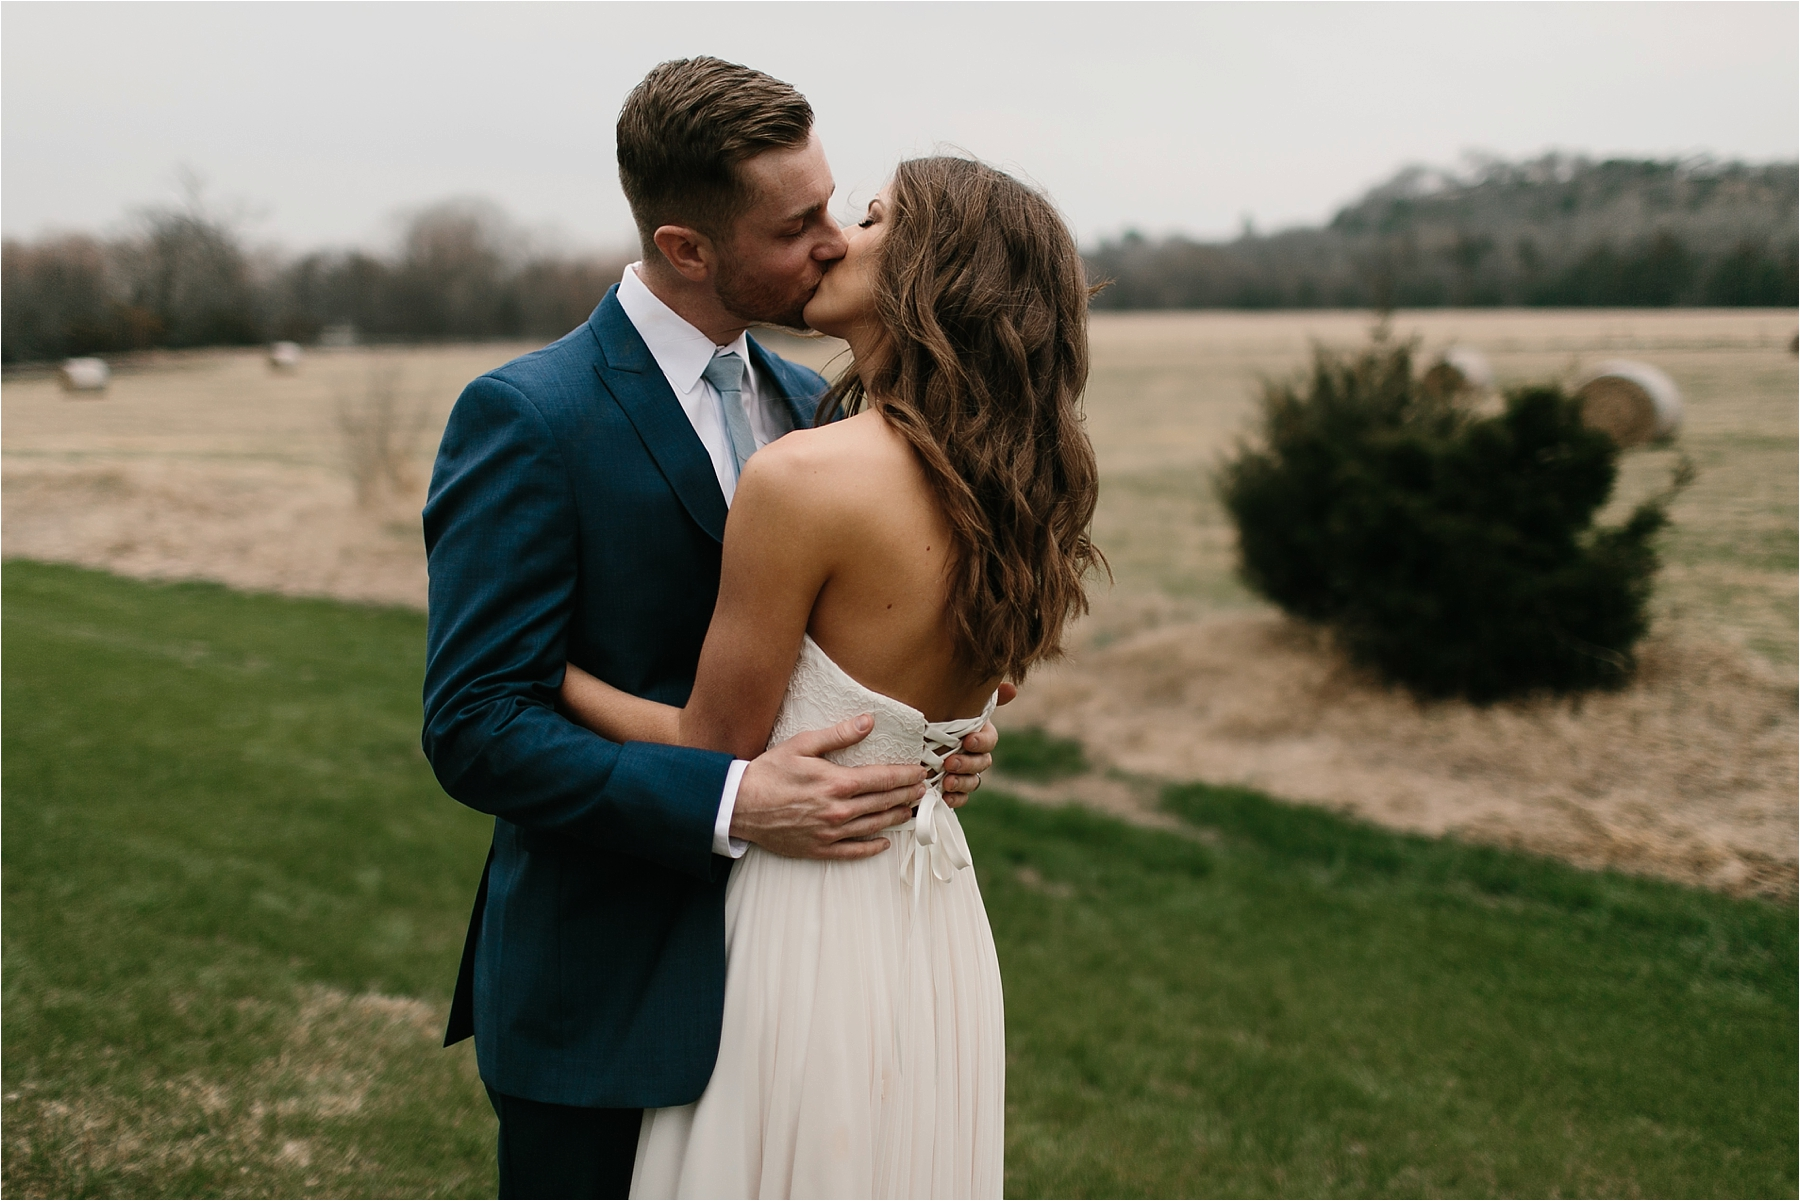 Lauren + Matt __ an intimate, emotional, blush pink, navy blue, and greenery toned wedding accents at the Brooks at Weatherford by North Texas Wedding Photographer Rachel Meagan Photography043